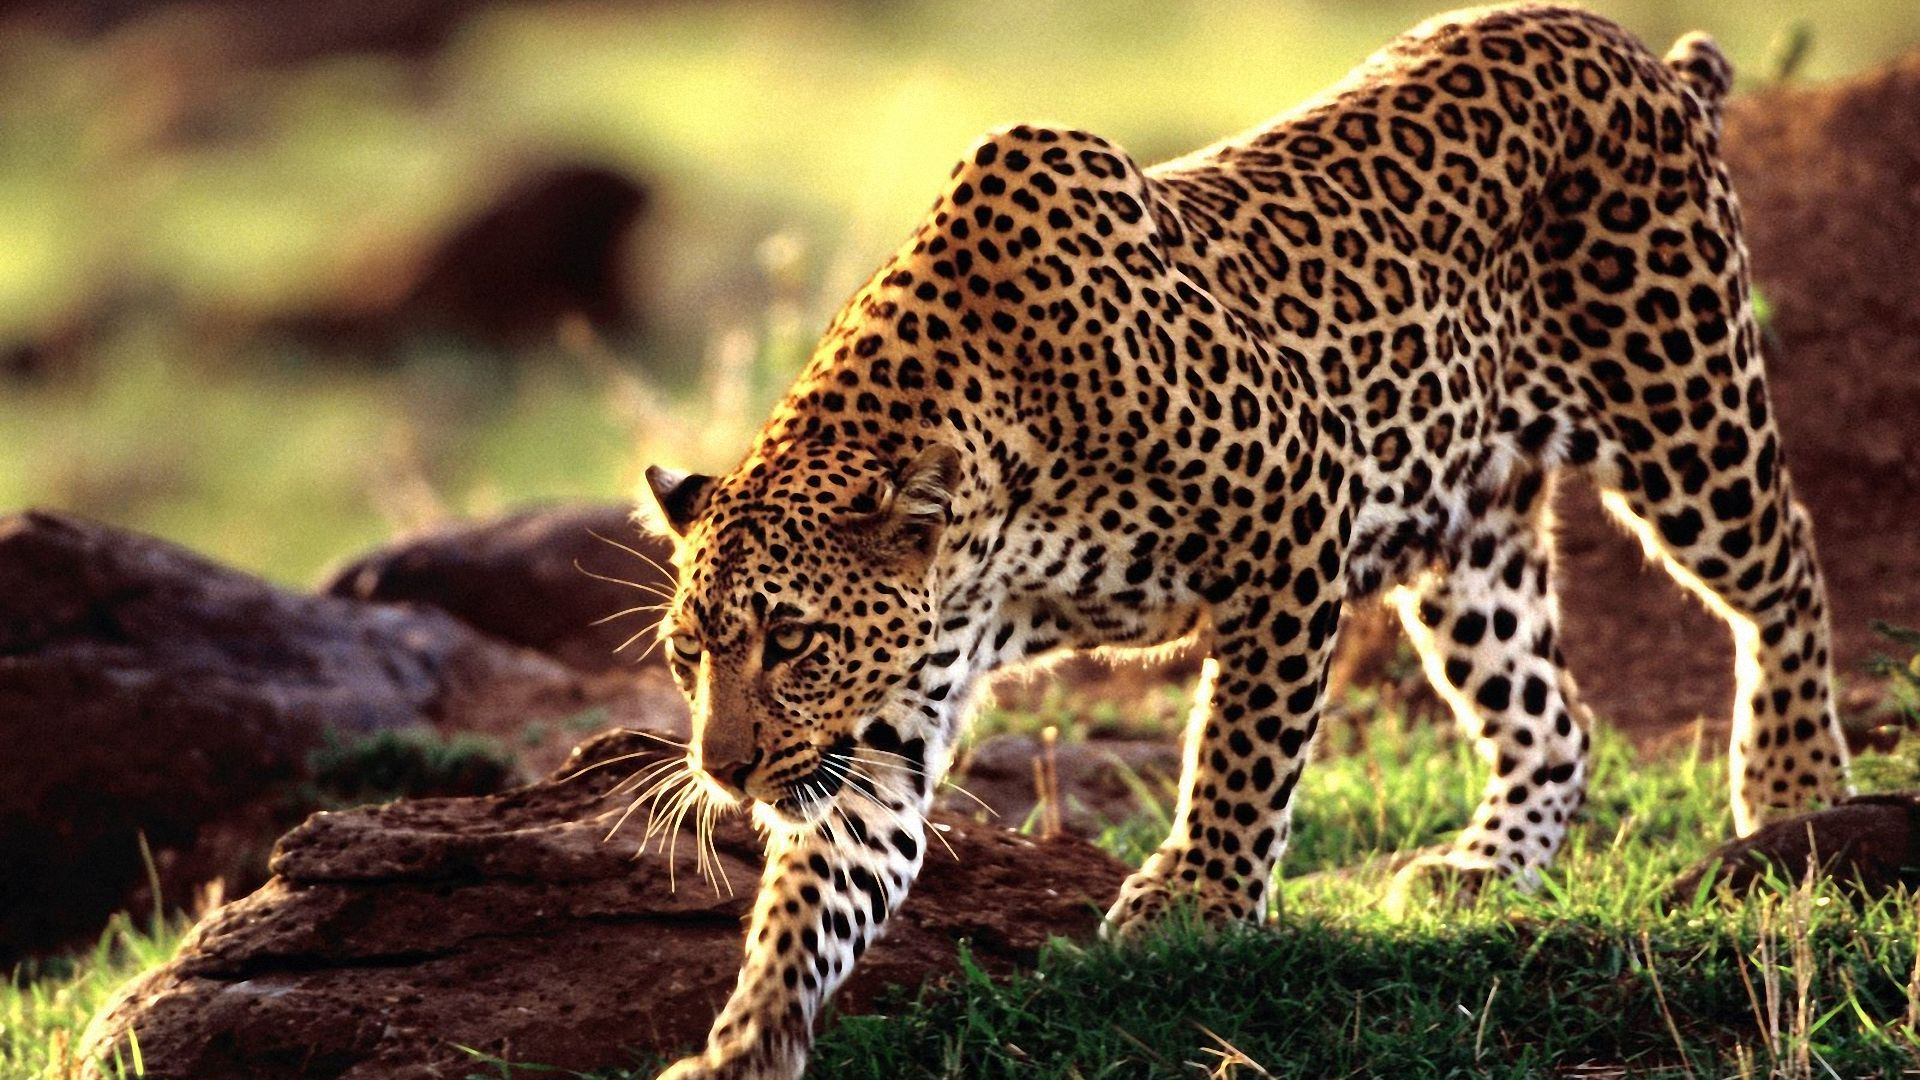 wallpaper amur leopard animal - photo #12